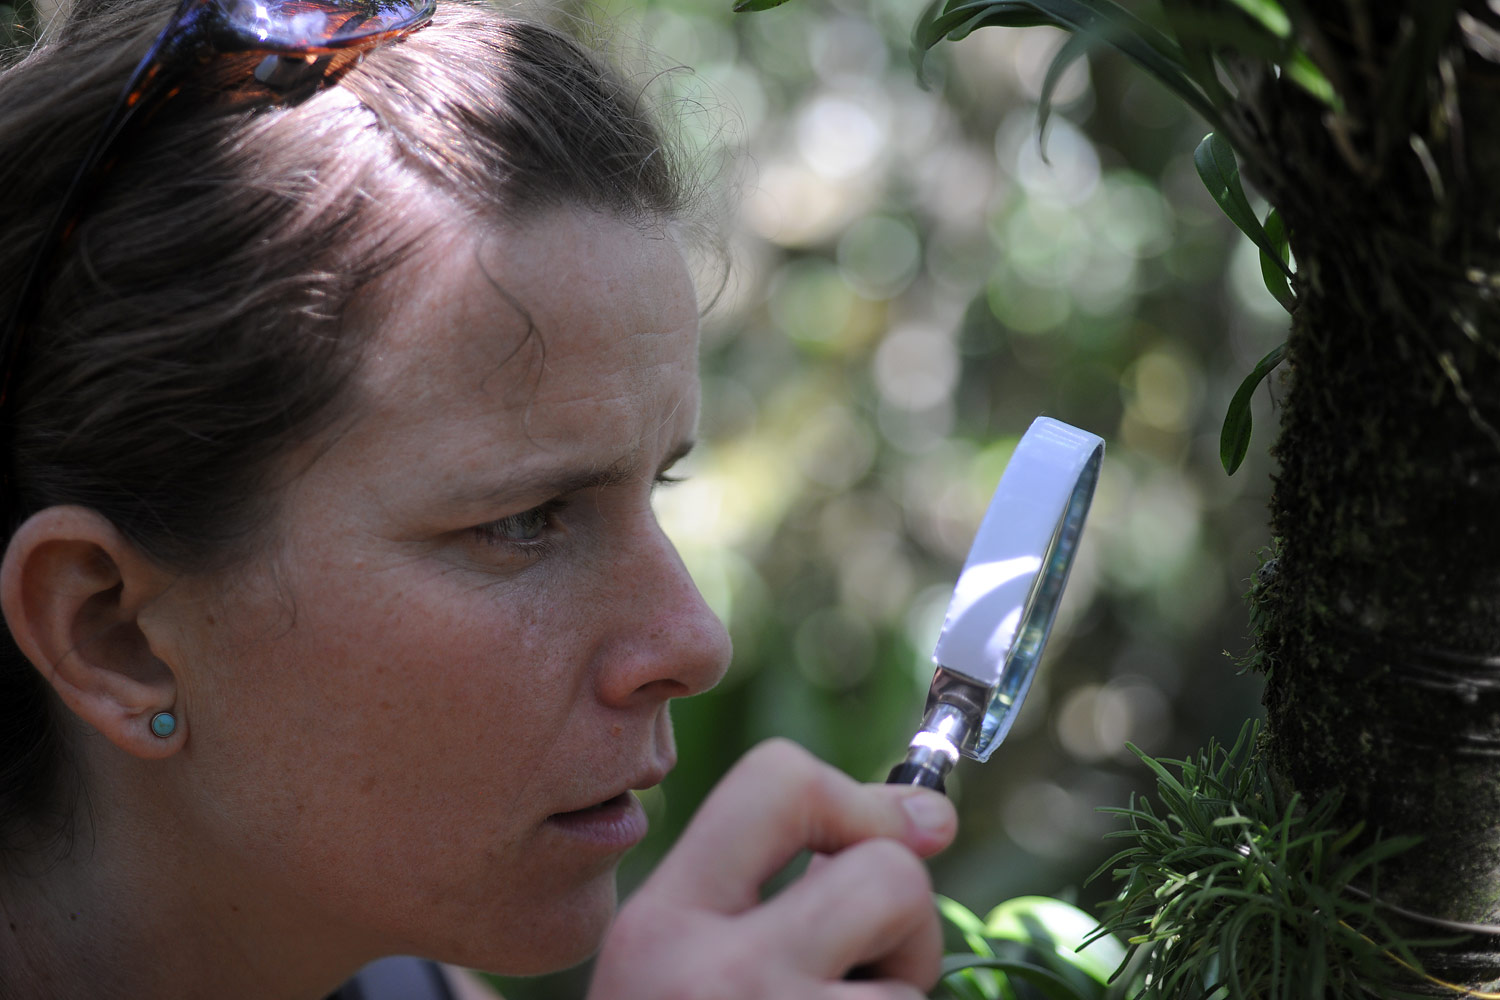 Miriam inspecting, platystele jungermannioides,the smallest orchid in the world.  Approx 2mm across.